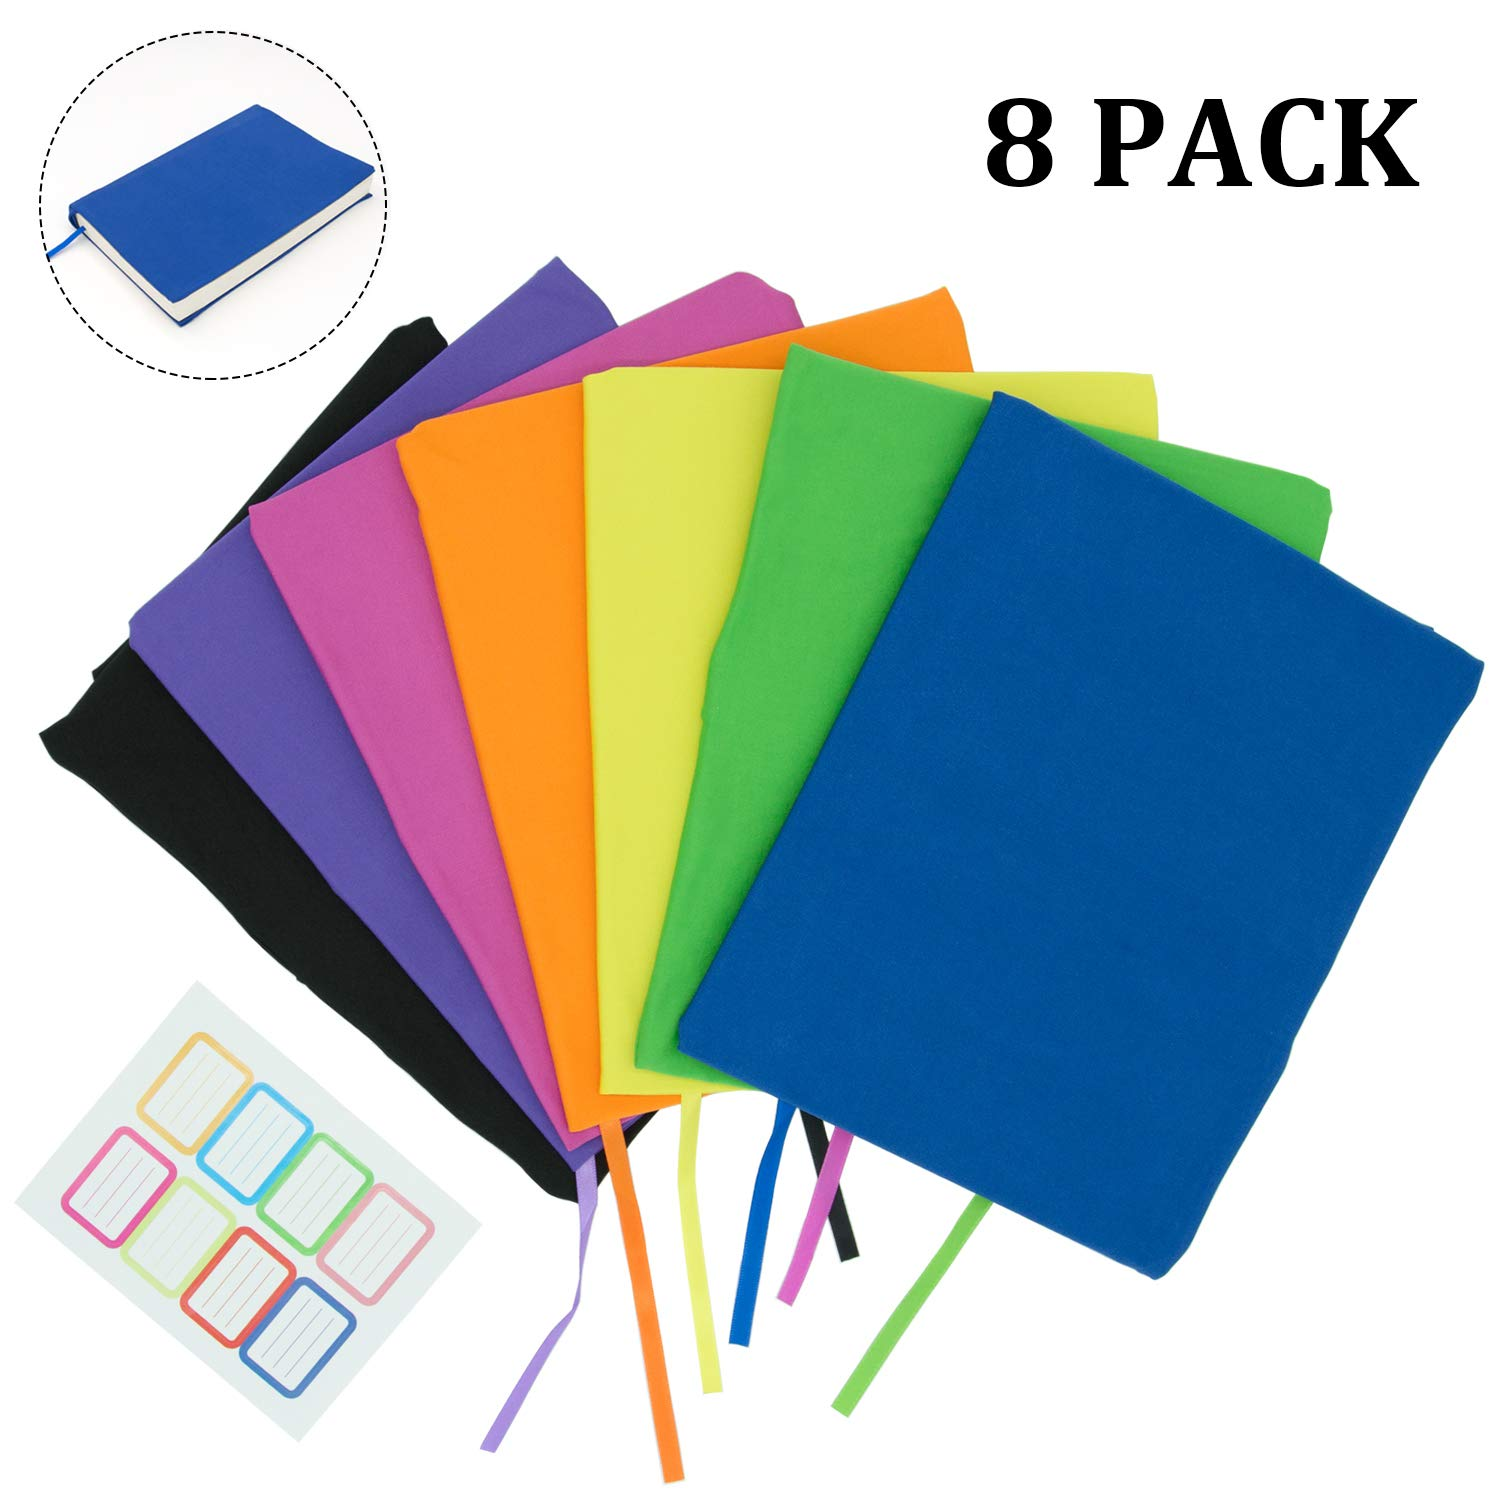 KIMCOME Jumbo Book Covers 8 Pack, Stretchable Book Sox Suitable for Most Hardcover Books, Up to 9.5''x14'' Durable and Washable, Reusable Protective Textbook Covers with Label Sticker